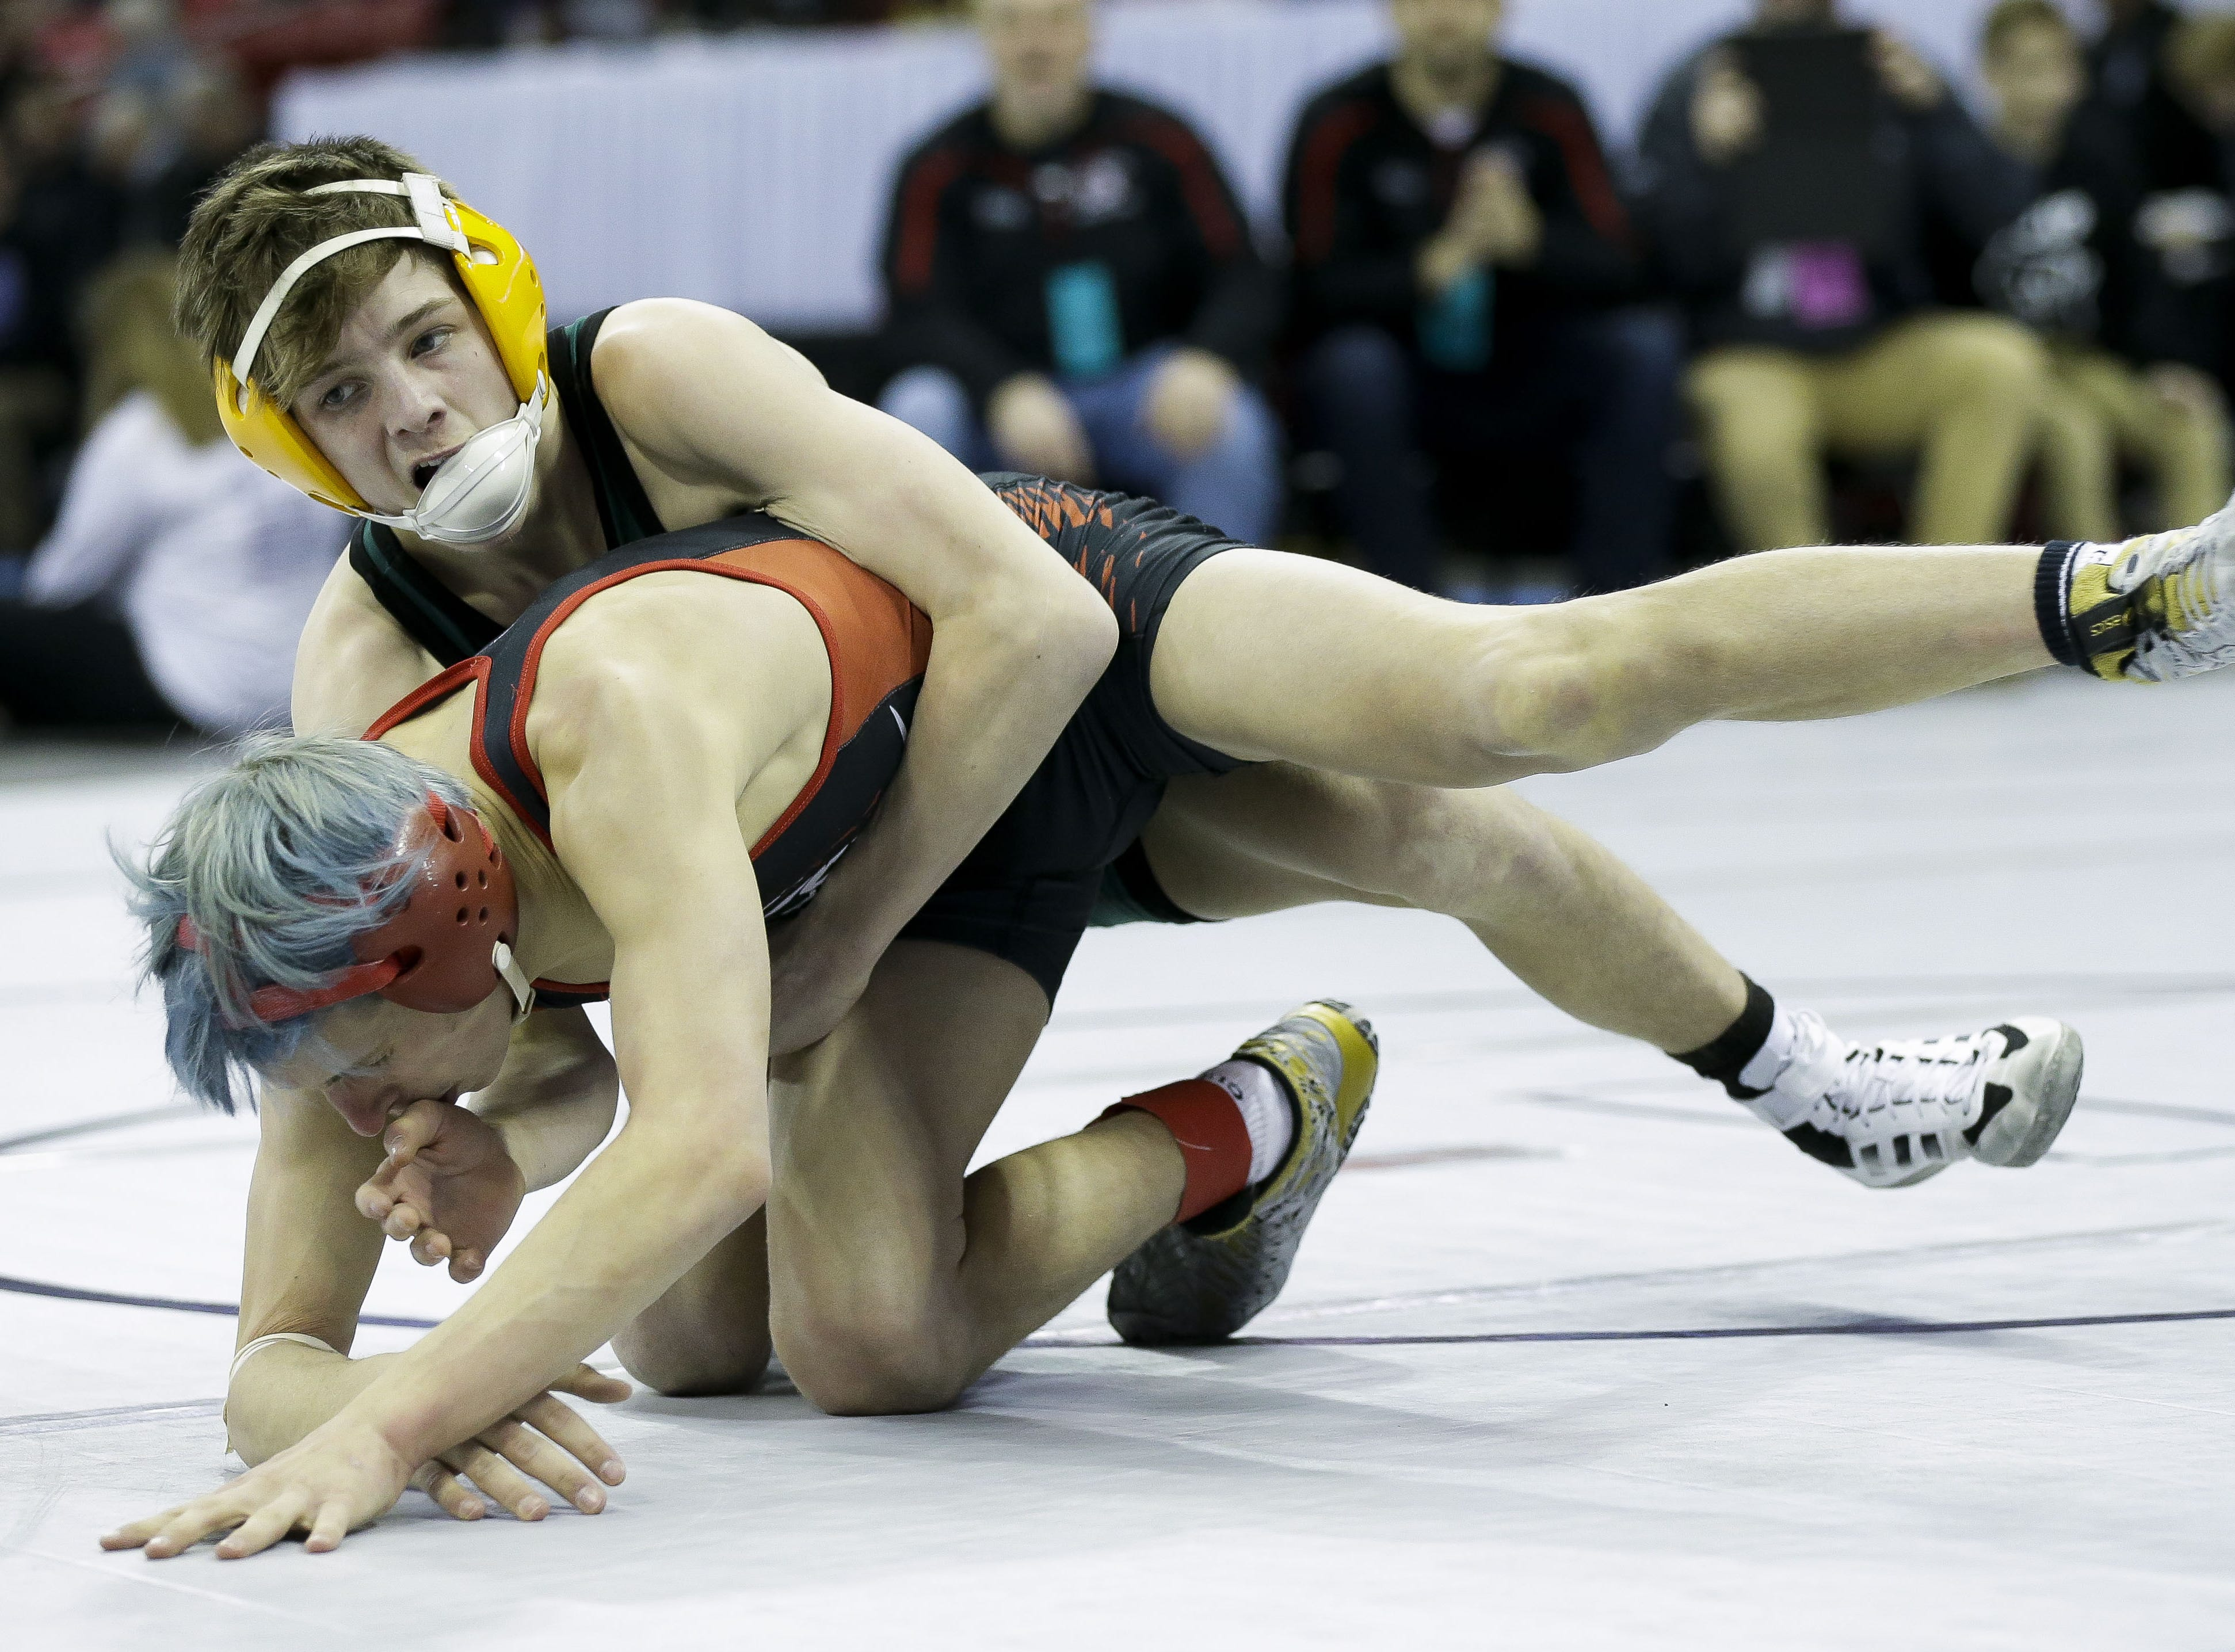 Ashwaubenon's Cody Minor wrestles against Pewaukee's Rece Czerniejewski in a Division 1 113-pound preliminary match during the WIAA state wrestling tournament on Thursday, February 21, 2019, at the Kohl Center in Madison, Wis. Tork Mason/USA TODAY NETWORK-Wisconsin